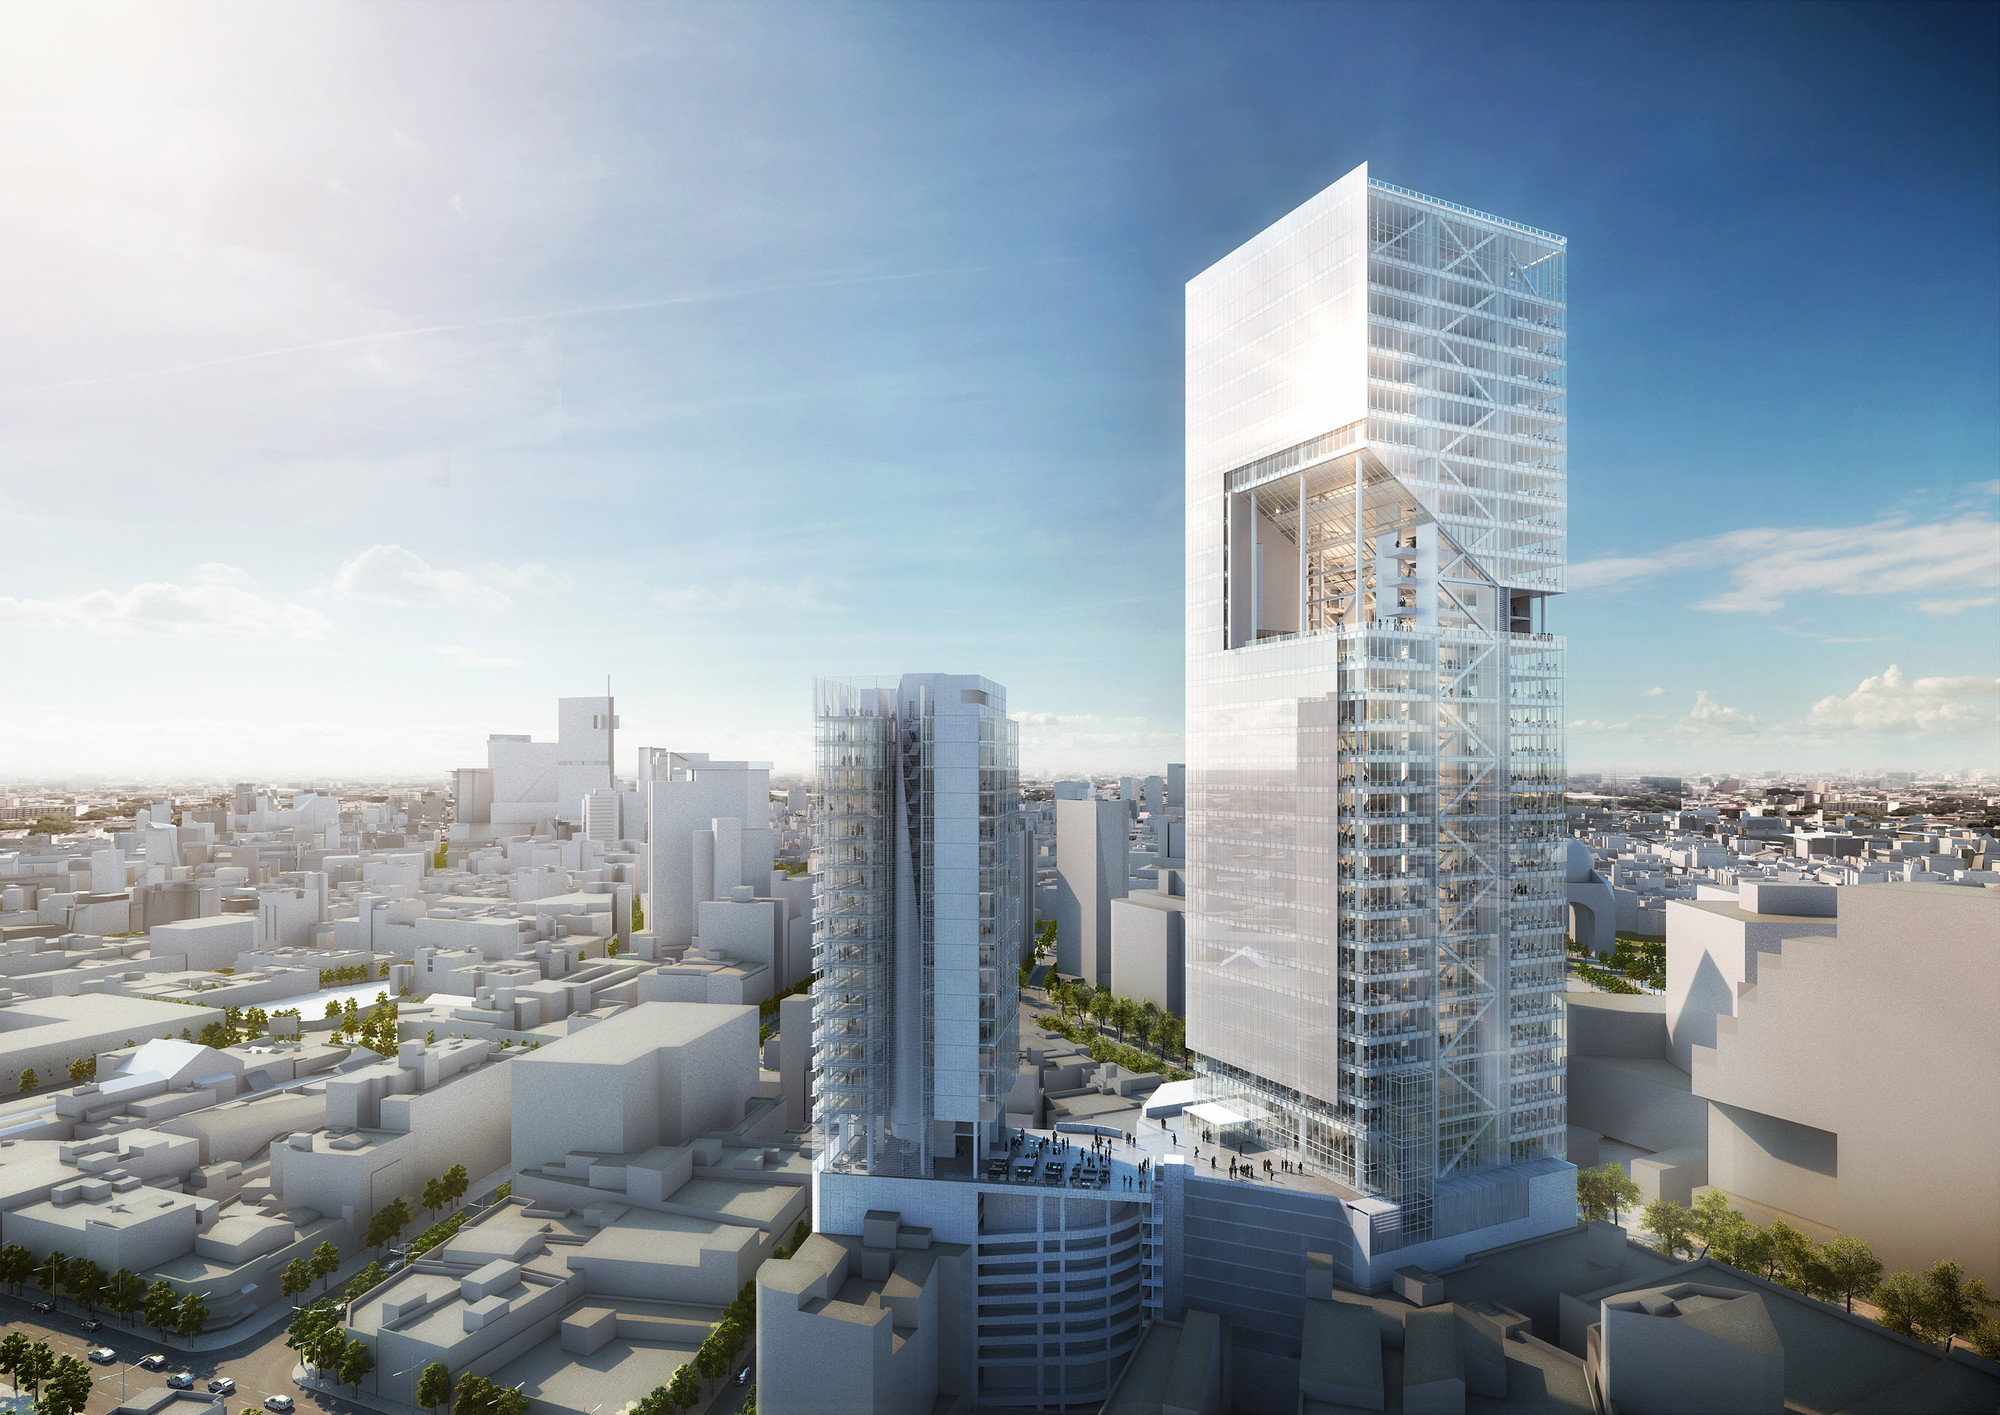 Richard Meier Unveils 180-Meter Tower Development in Mexico, Reforma Towers. Image Courtesy of Richard Meier & Partners